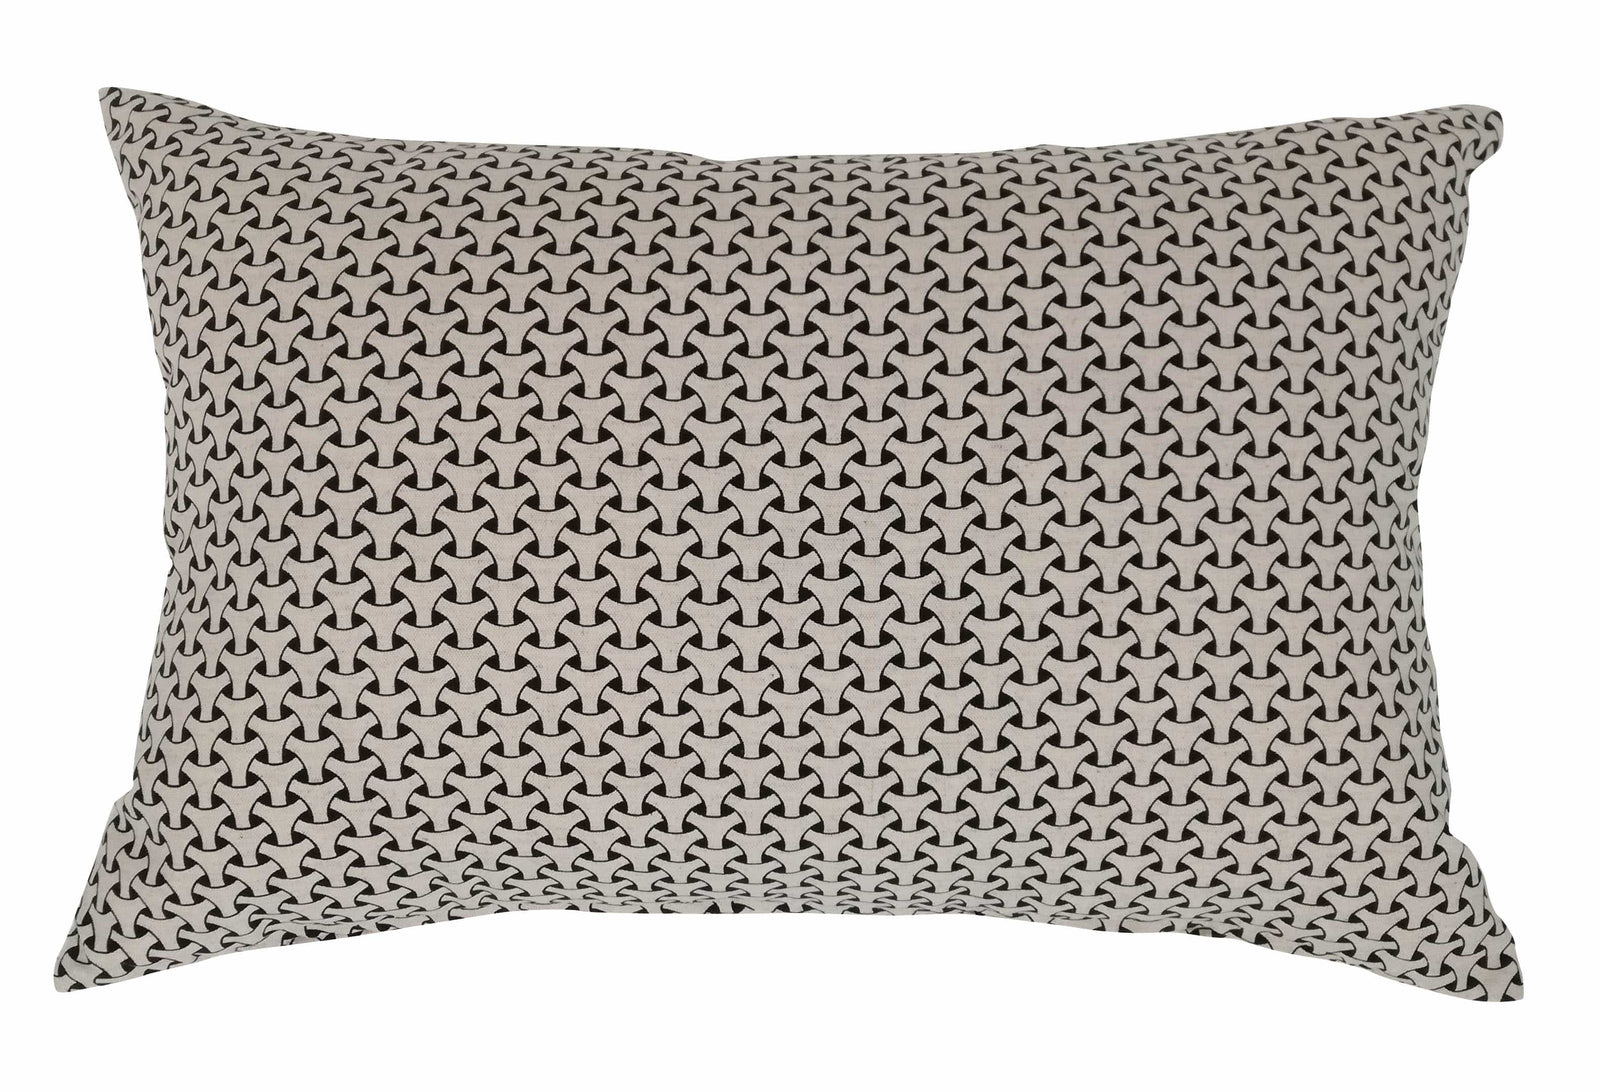 Oblong Dogon Weave Black Cushion Cover